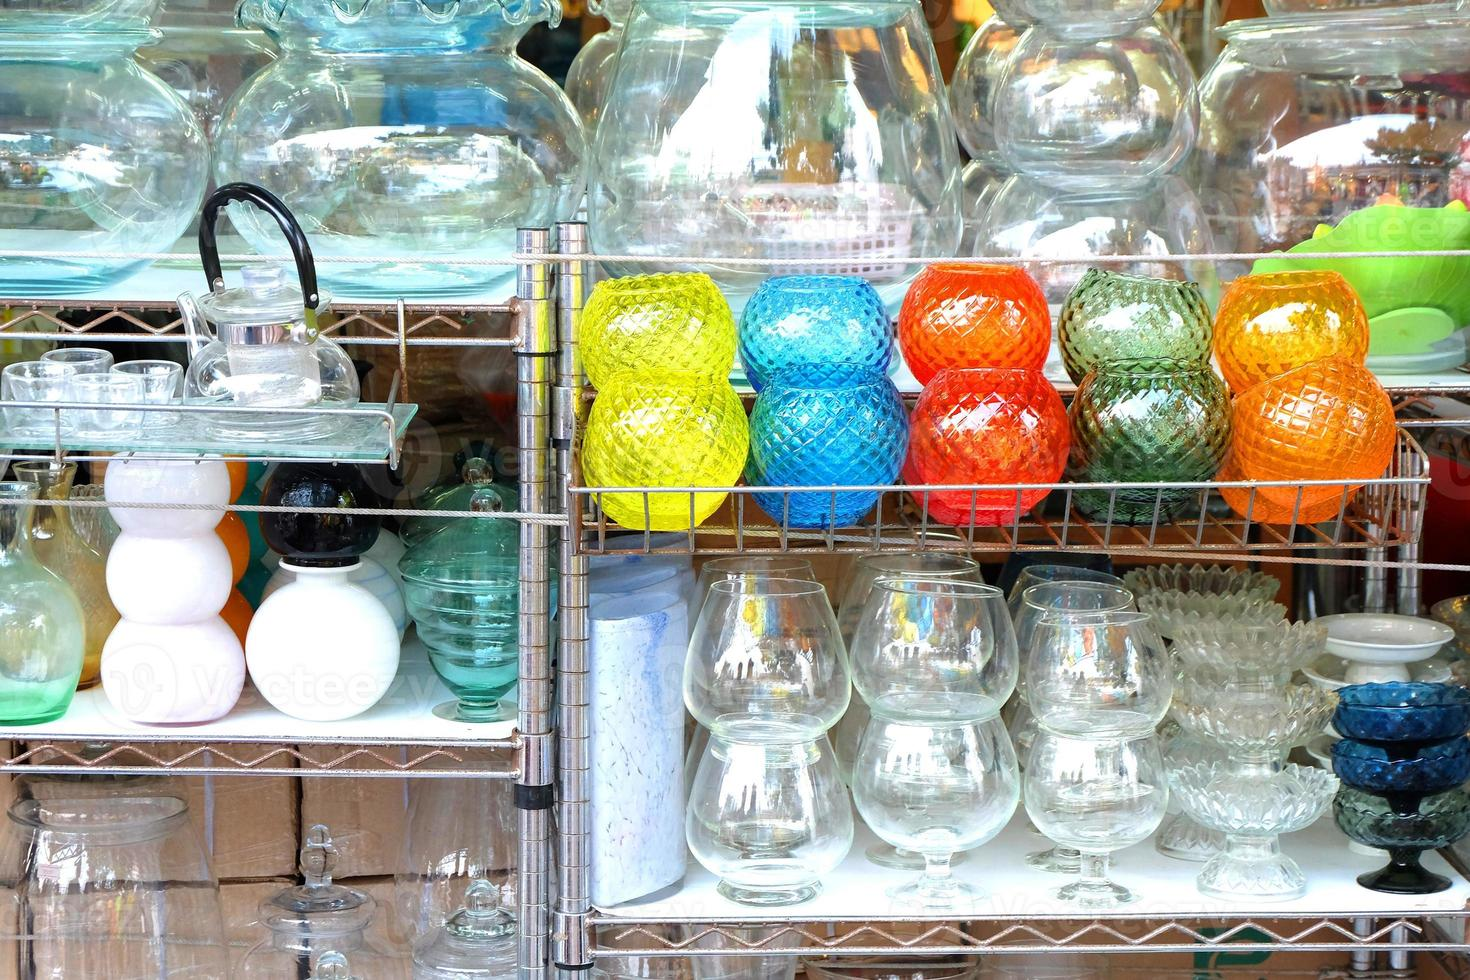 Colorful Vases / Decorations Shop in Weekend Outdoor Market photo